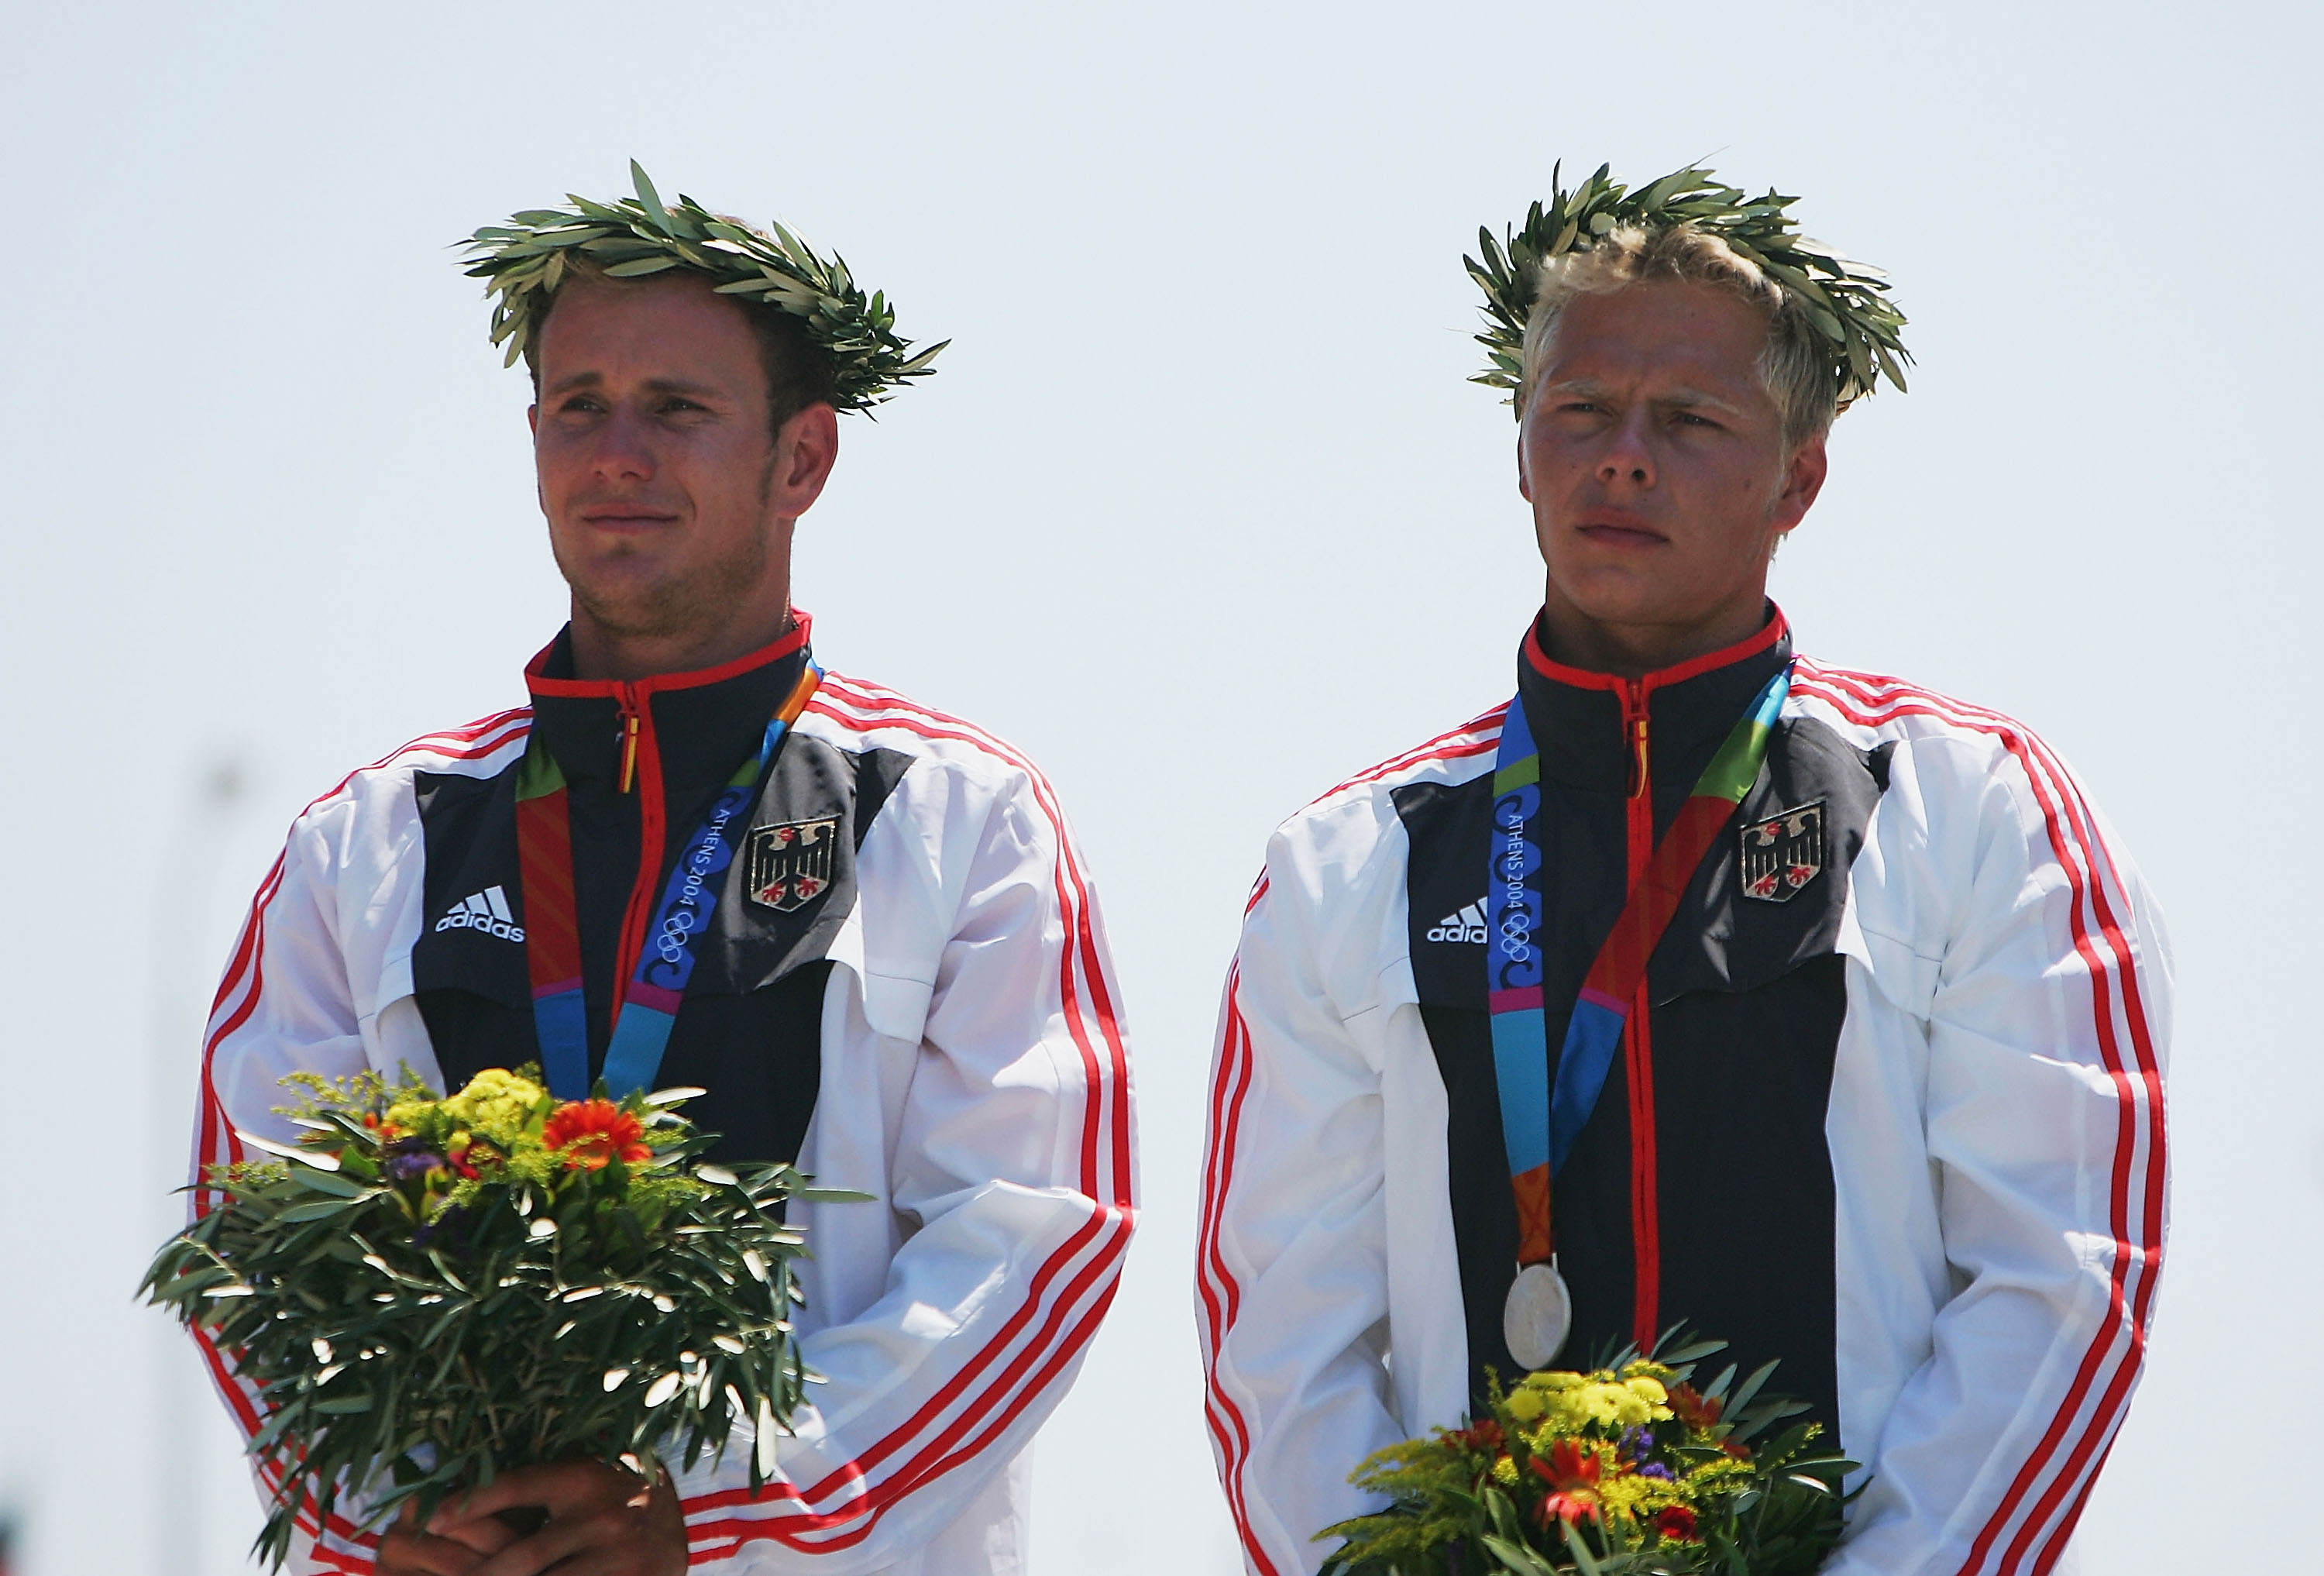 Mens C2 Slalom Double Medal Ceremony